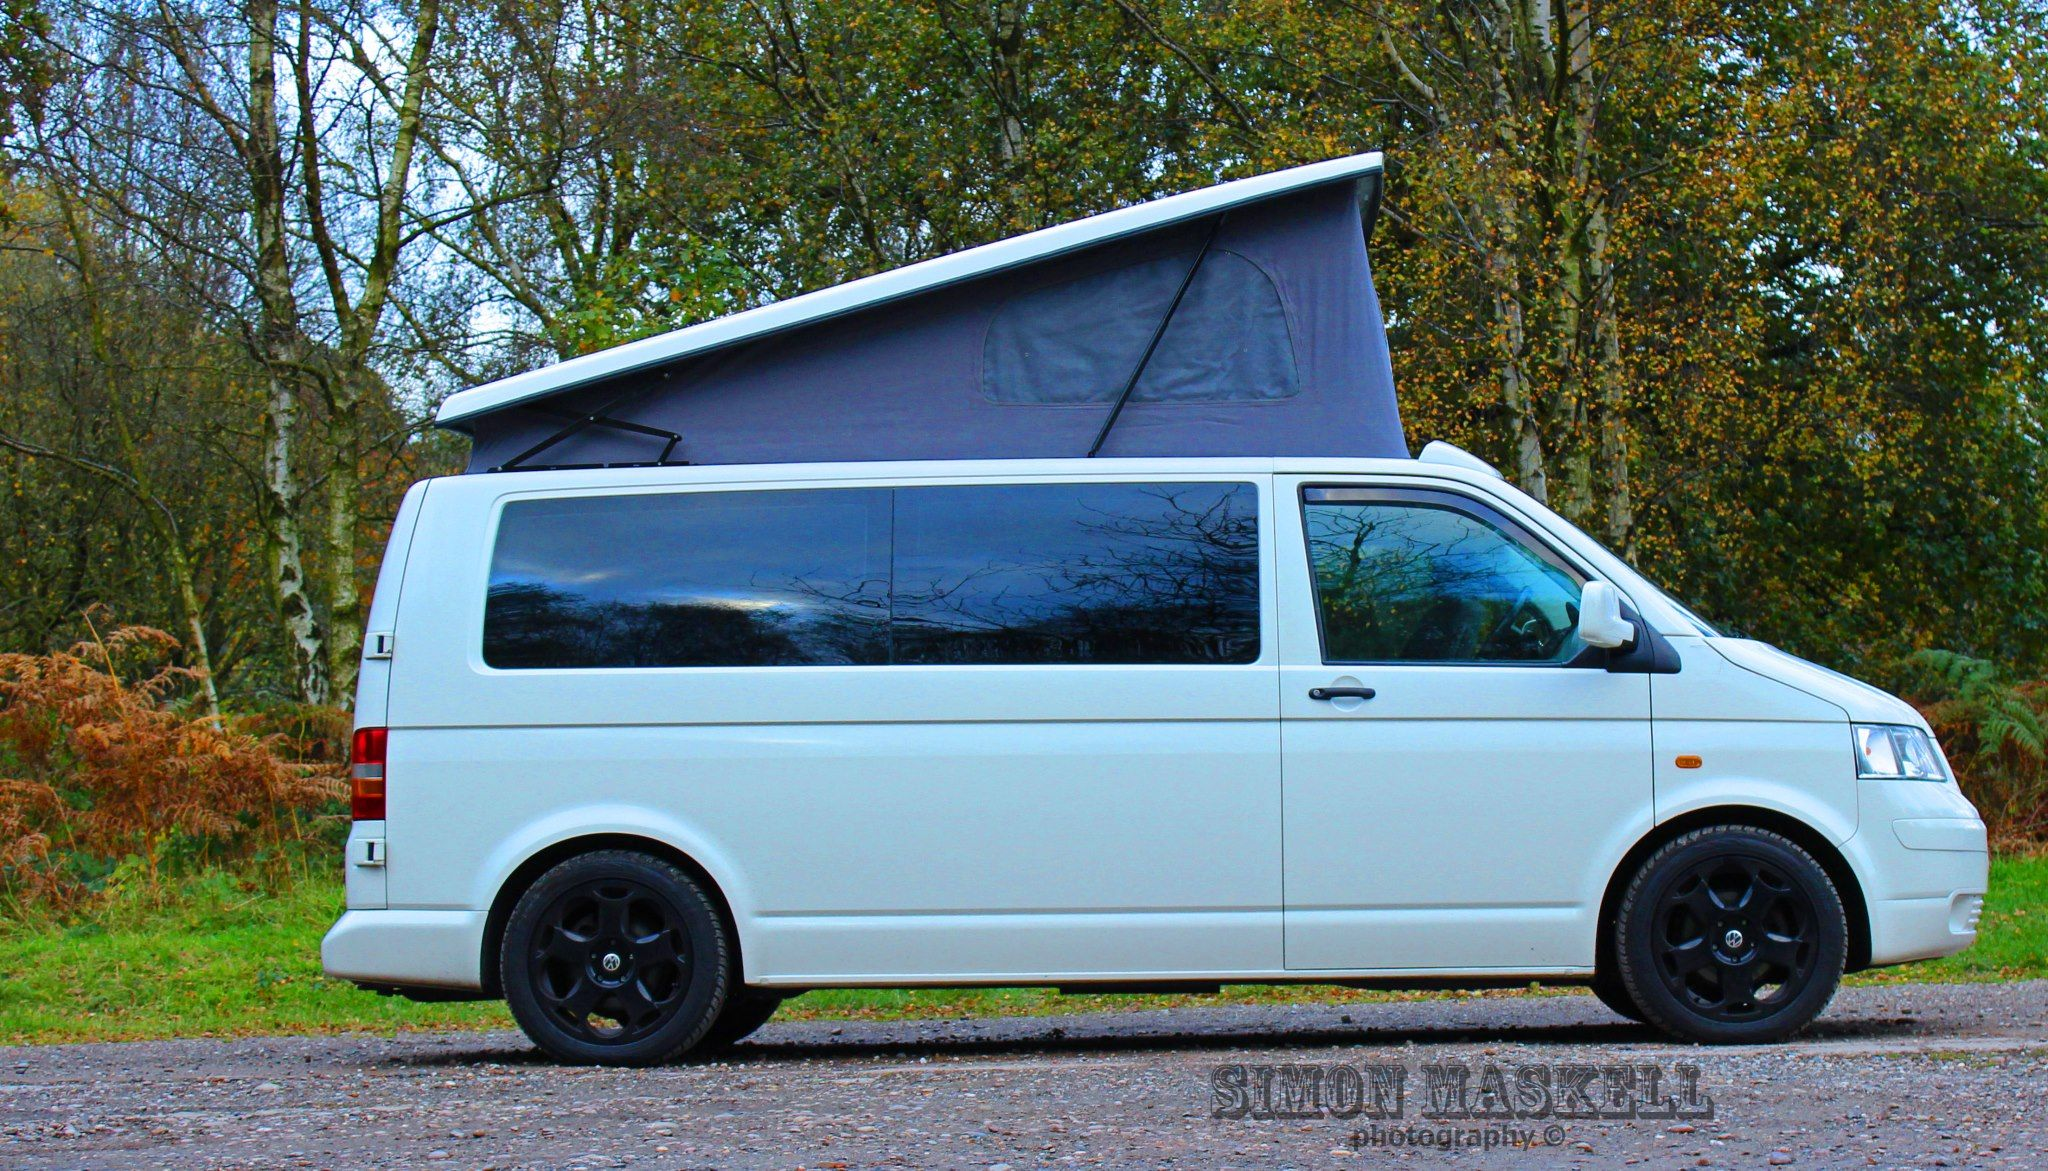 vw transporter t5 lwb conversion camper now completed home is where you park it t5. Black Bedroom Furniture Sets. Home Design Ideas